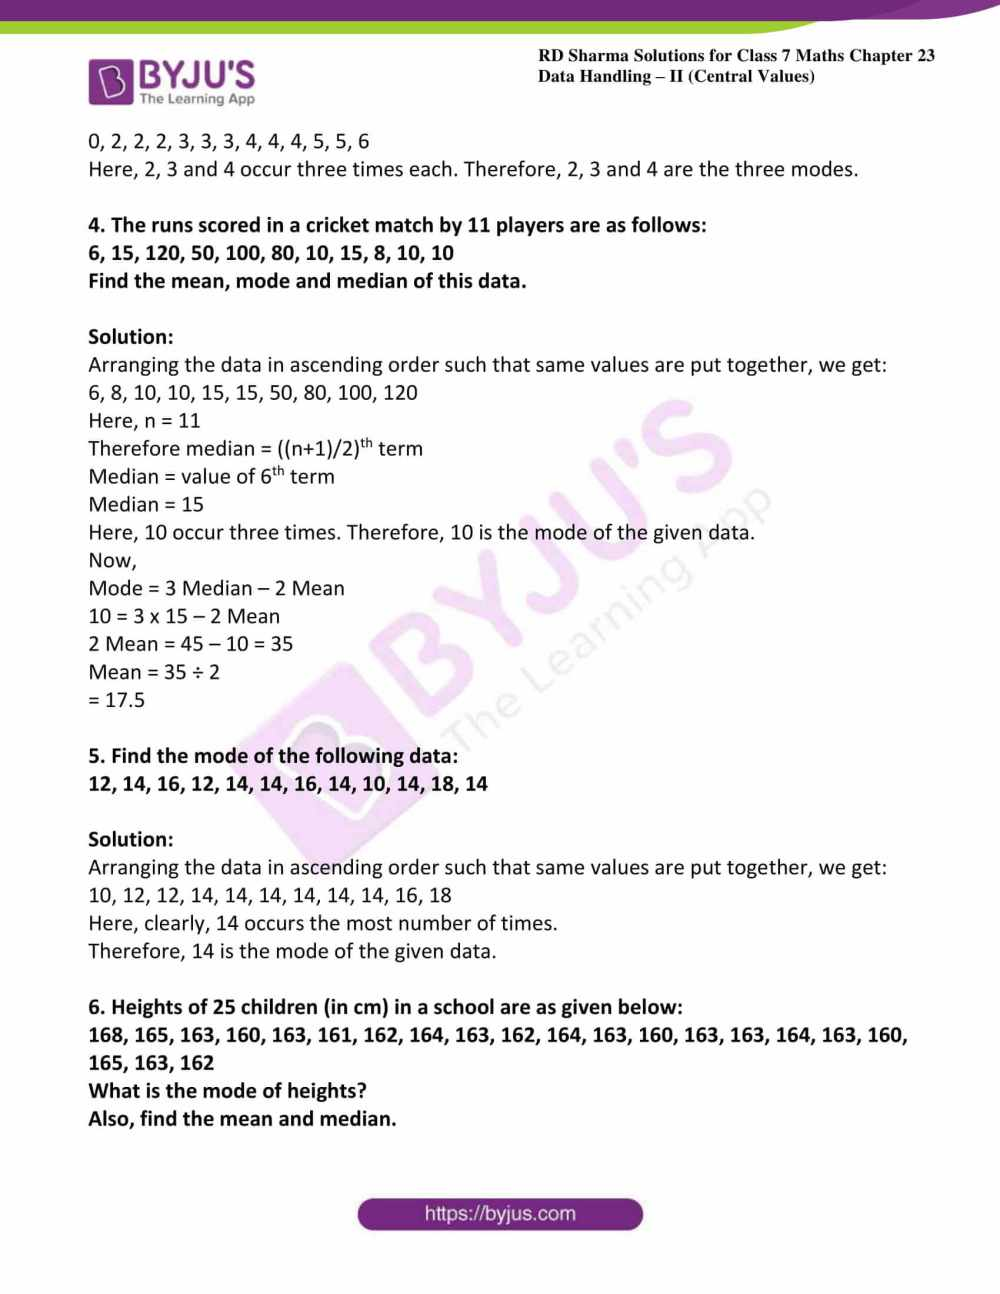 medium resolution of RD Sharma Solutions for Class 7 Maths Chapter 23 - Data Handling - II  (Central Values) Exercise 23.4 - free PDFs are available here.